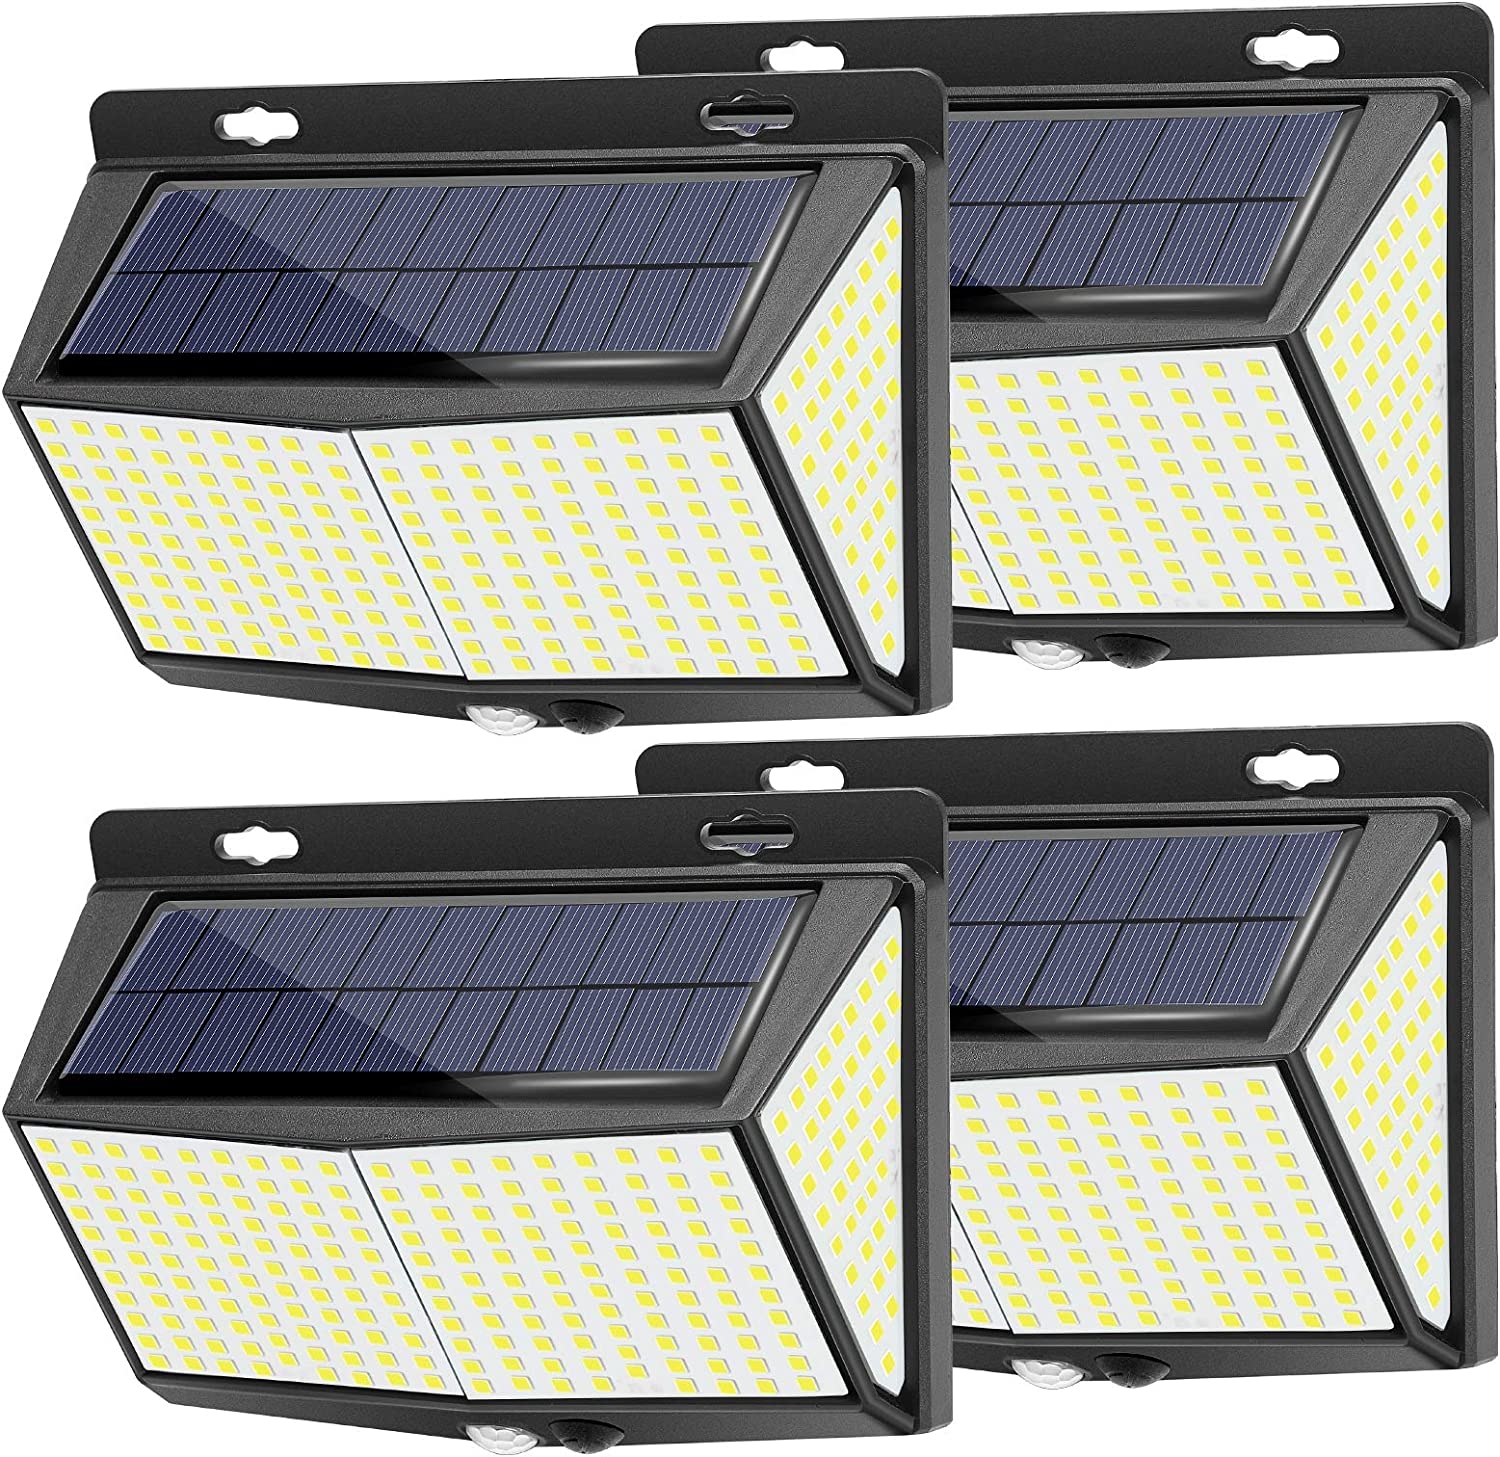 Amazon Com 288 Led Solar Lights Outdoor 4 Packs Exterior Solar Powered Lights Security Motion Sensor Lights With 3 Lighting Modes 270 Wide Angle Ip65 Waterproof Wireless For Outside Wall Fence Yard Garage Home Improvement